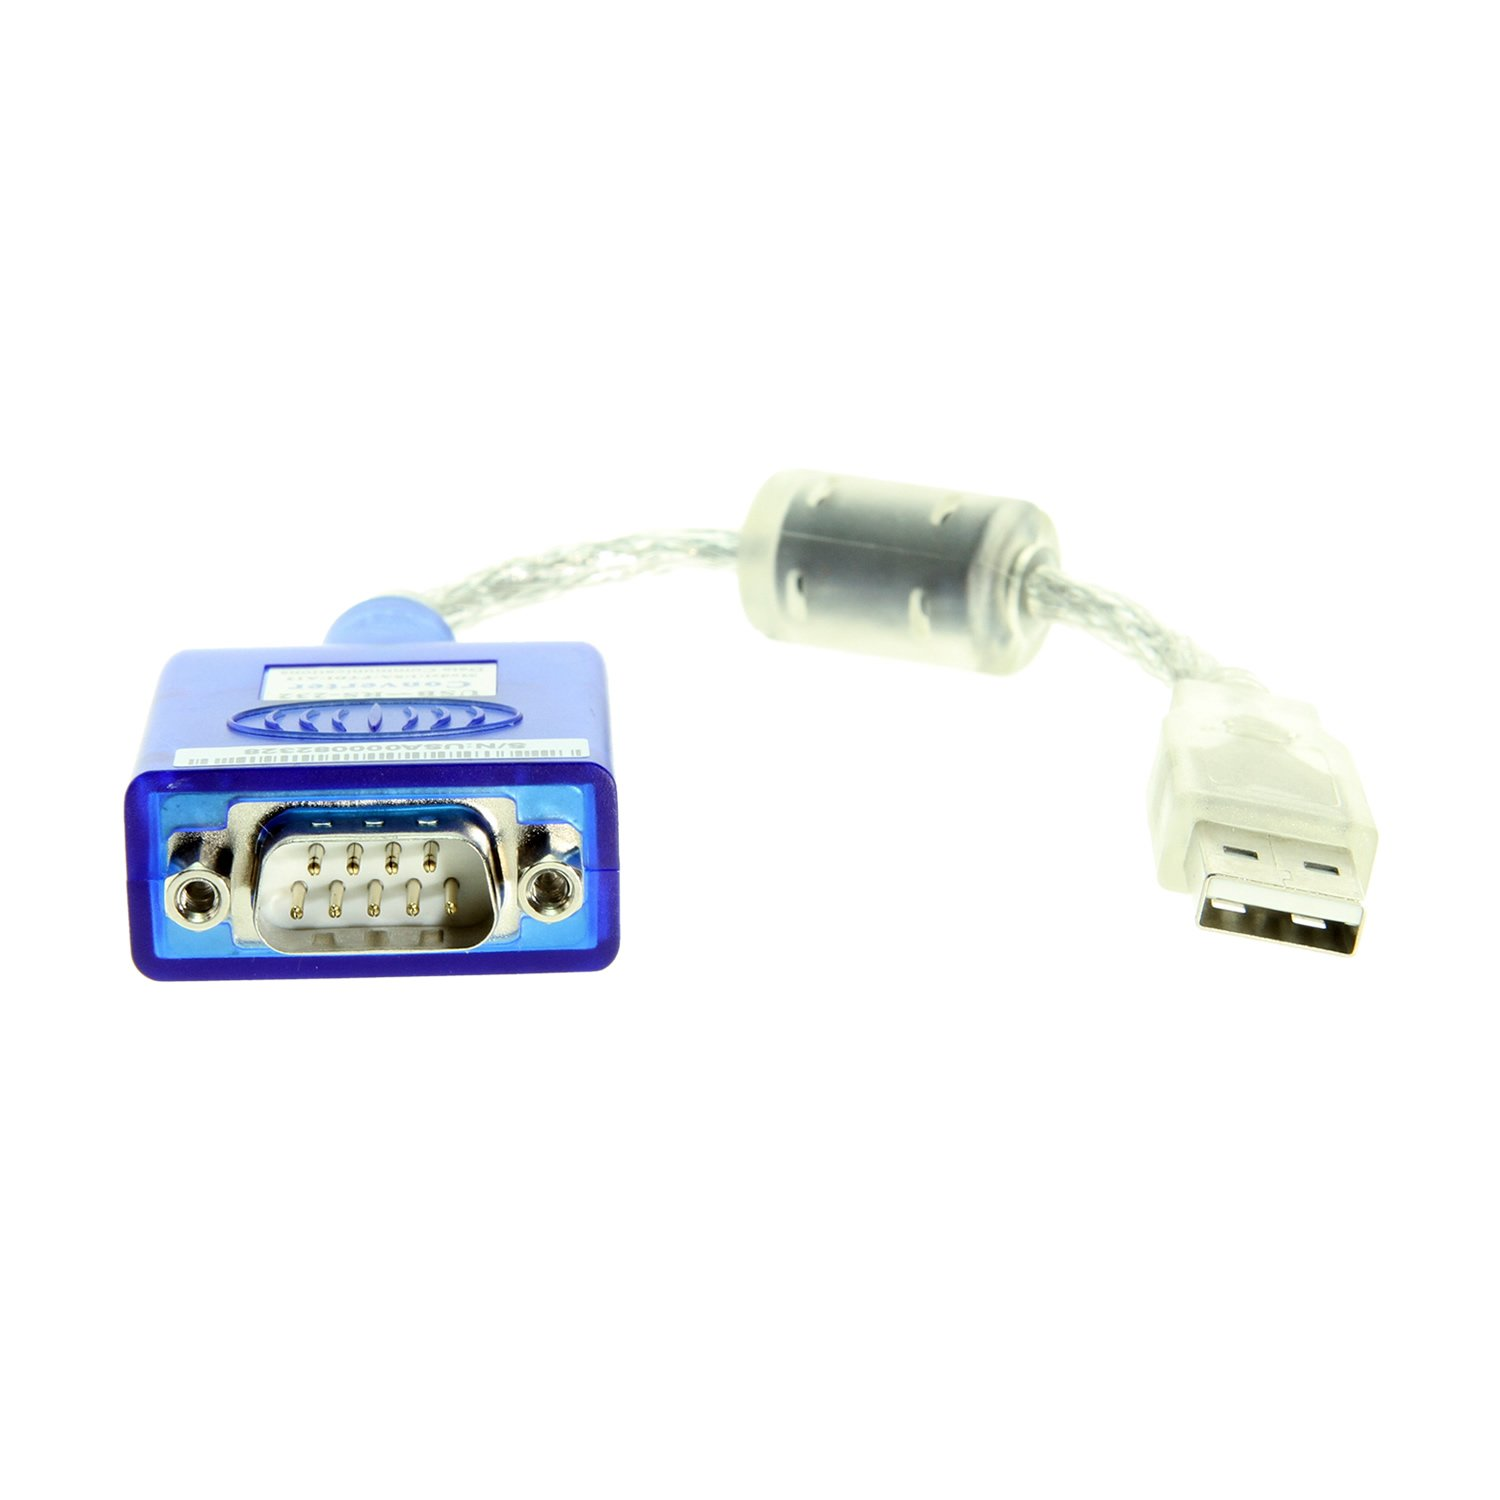 Gearmo Windows 7 8 And 10 Compatible Usb Serial Adapter Working Of Ft232 Chip To Uart Converter Gadgetronicx Ftdi Rs232 Db 9 920k With Tx Rx Led Computers Accessories